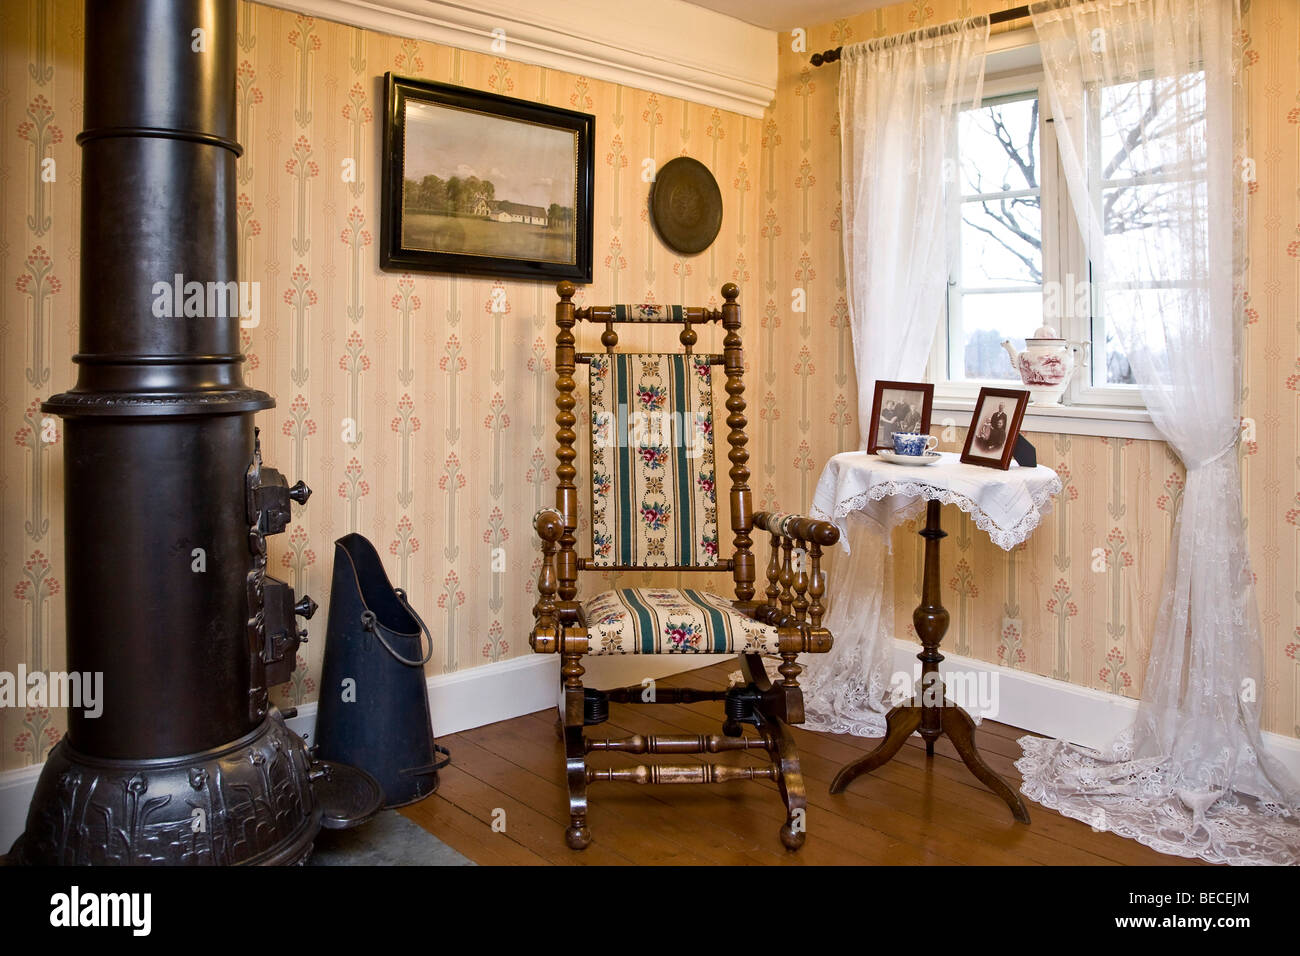 Old rocking chair at a woodburning stove - Stock Image